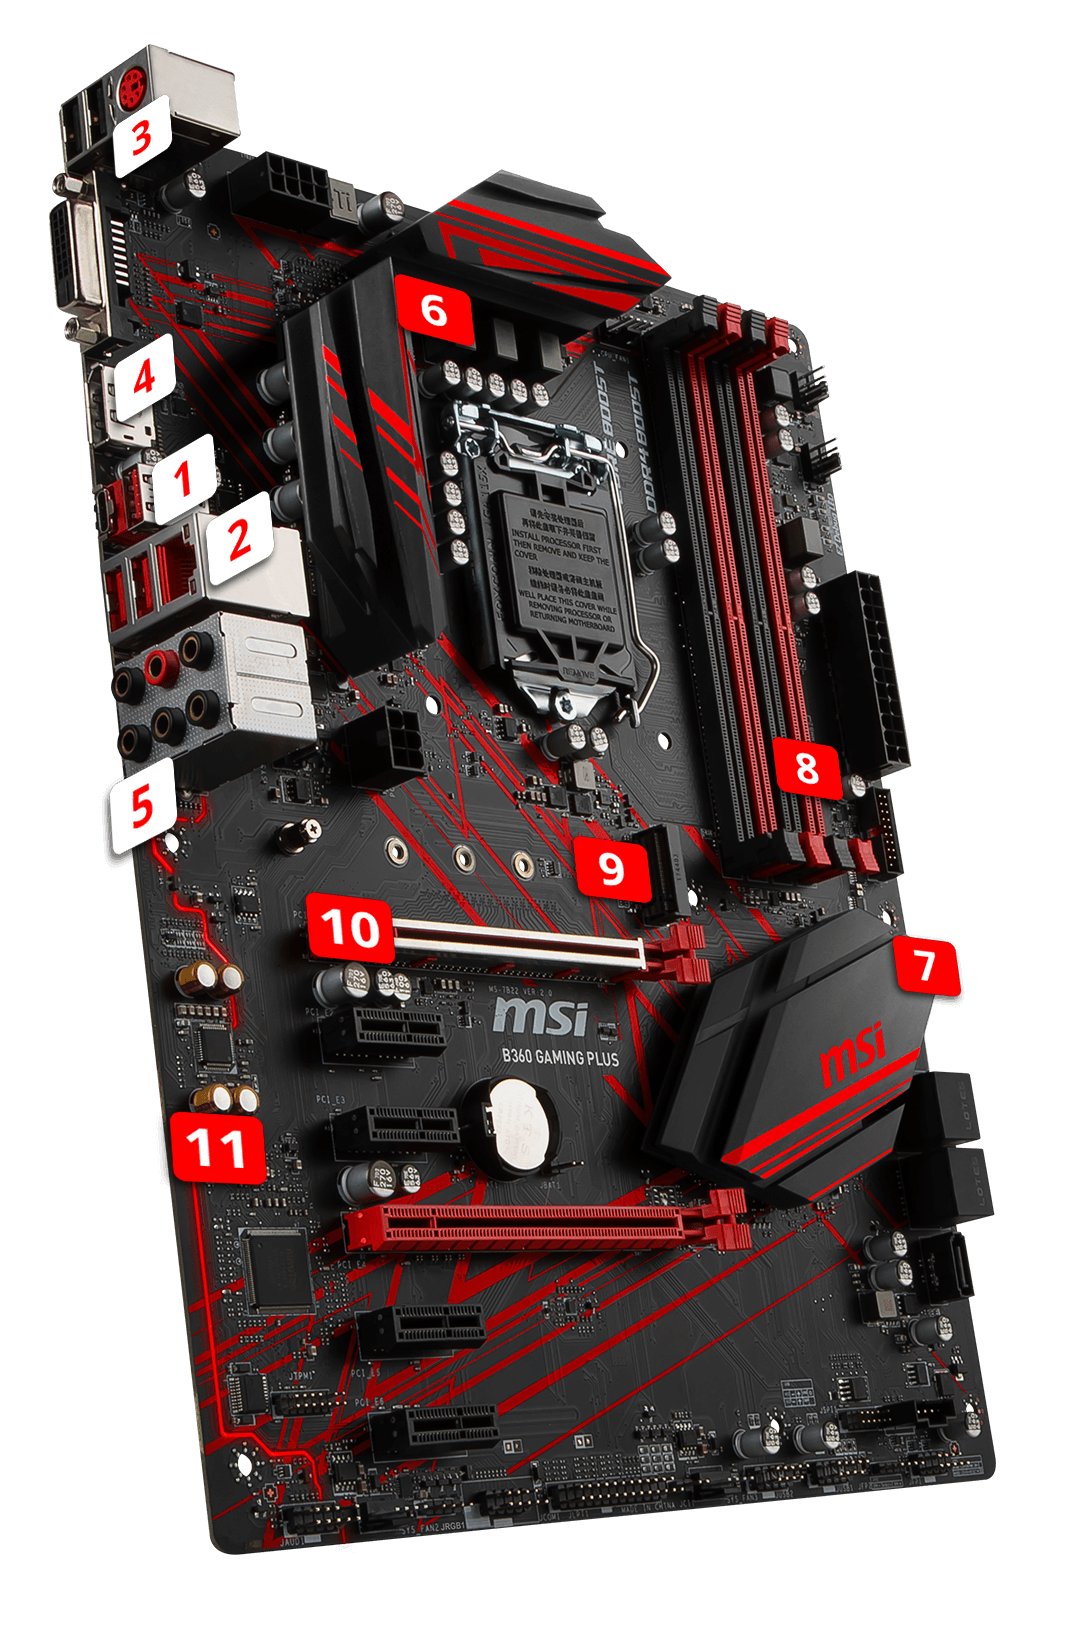 MSI B360 GAMING PLUS overview